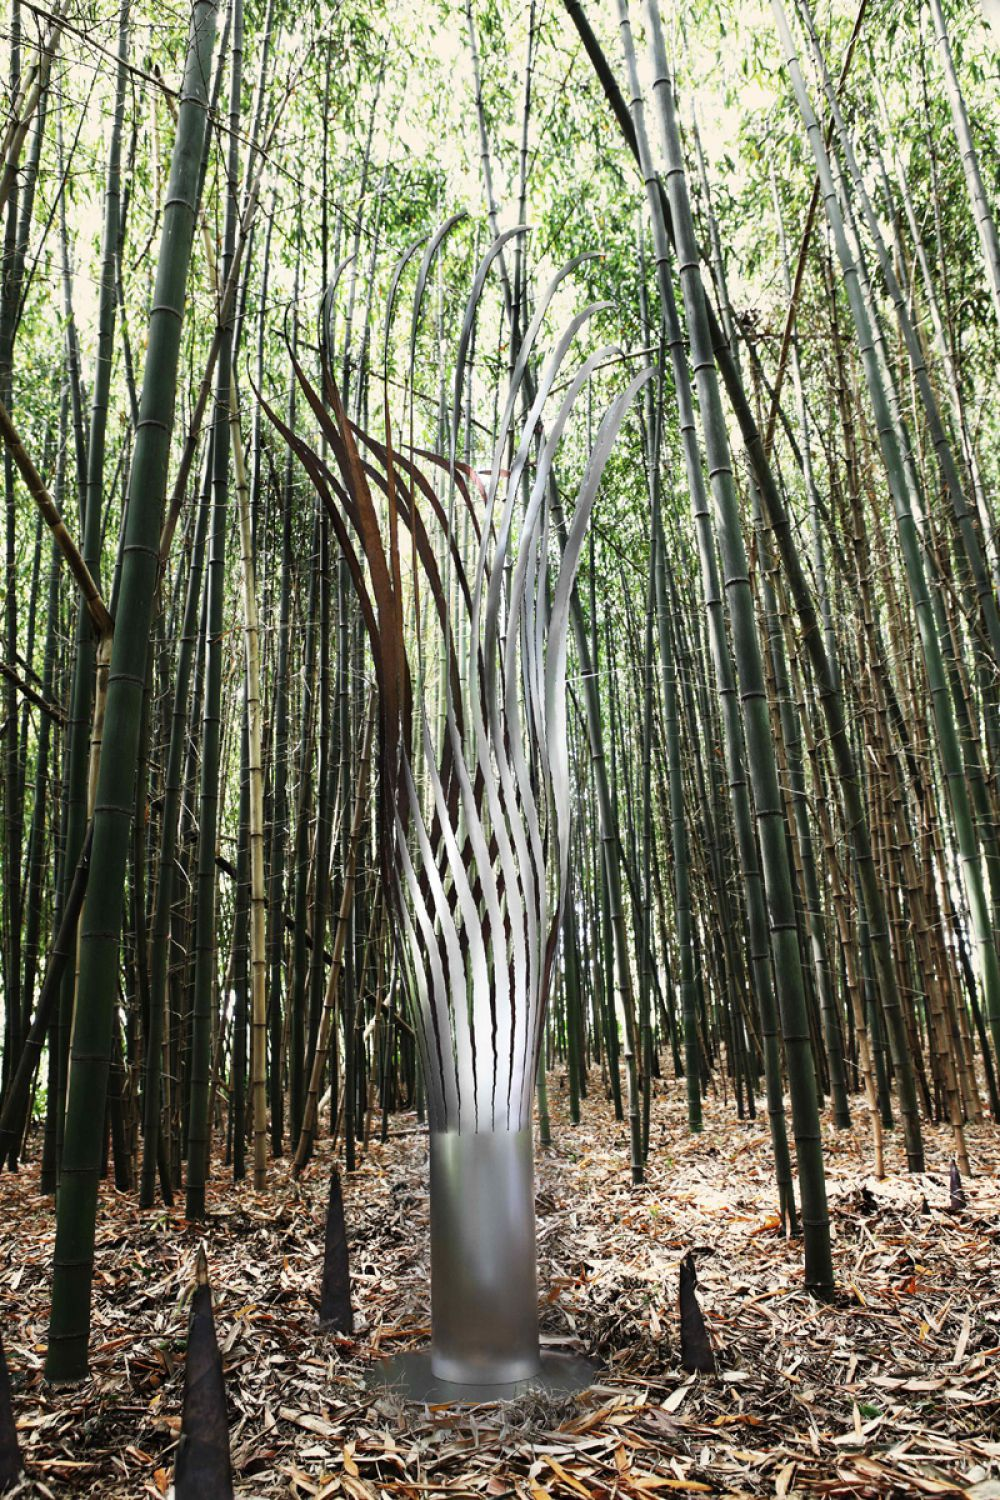 KOICEA Stainless Steel Sprout in a private giant bamboo forest